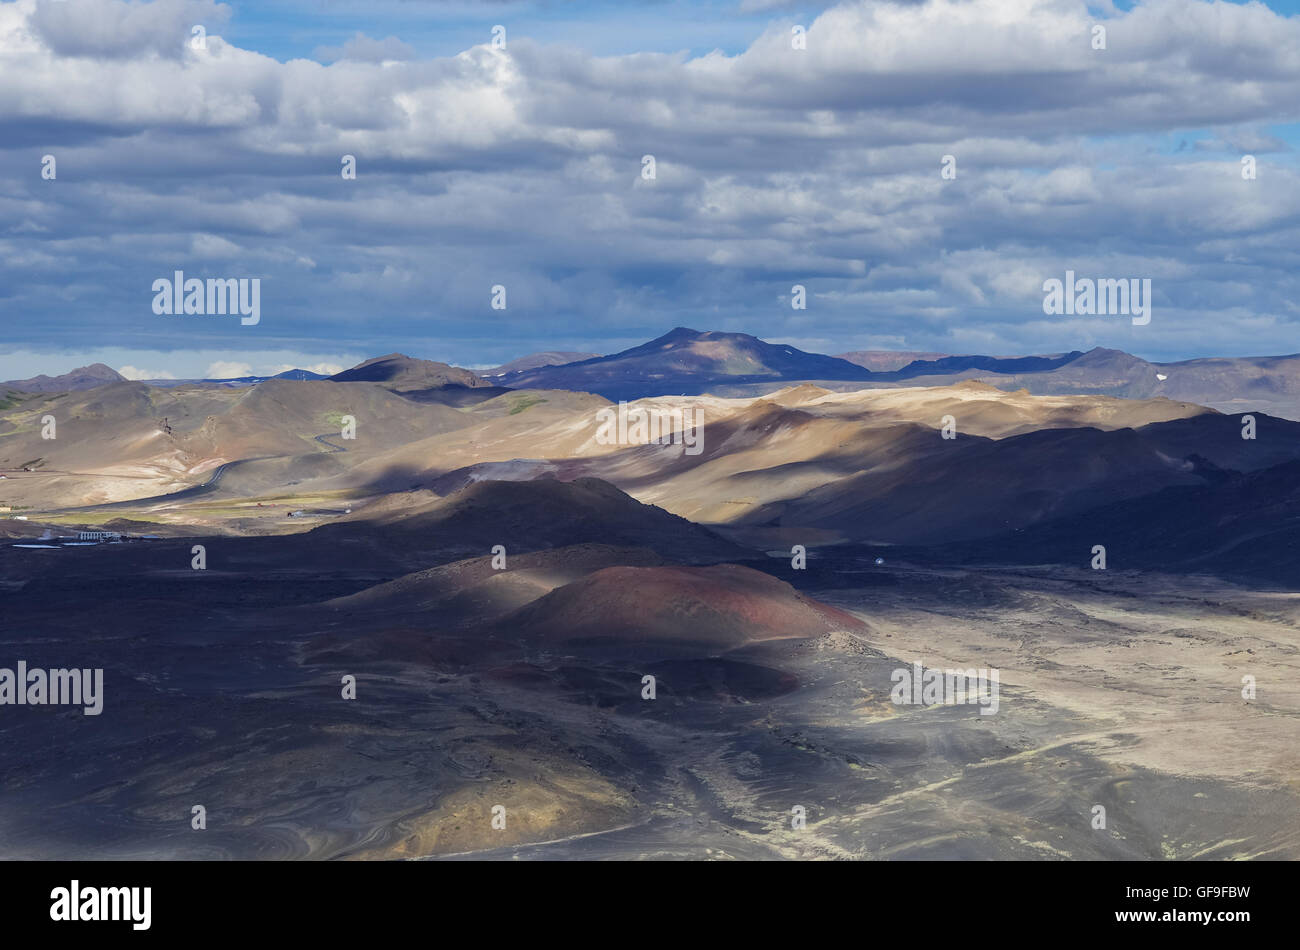 Colorfull hills. Landscape of geothermal field near Mvatmn Lake, Iceland. - Stock Image